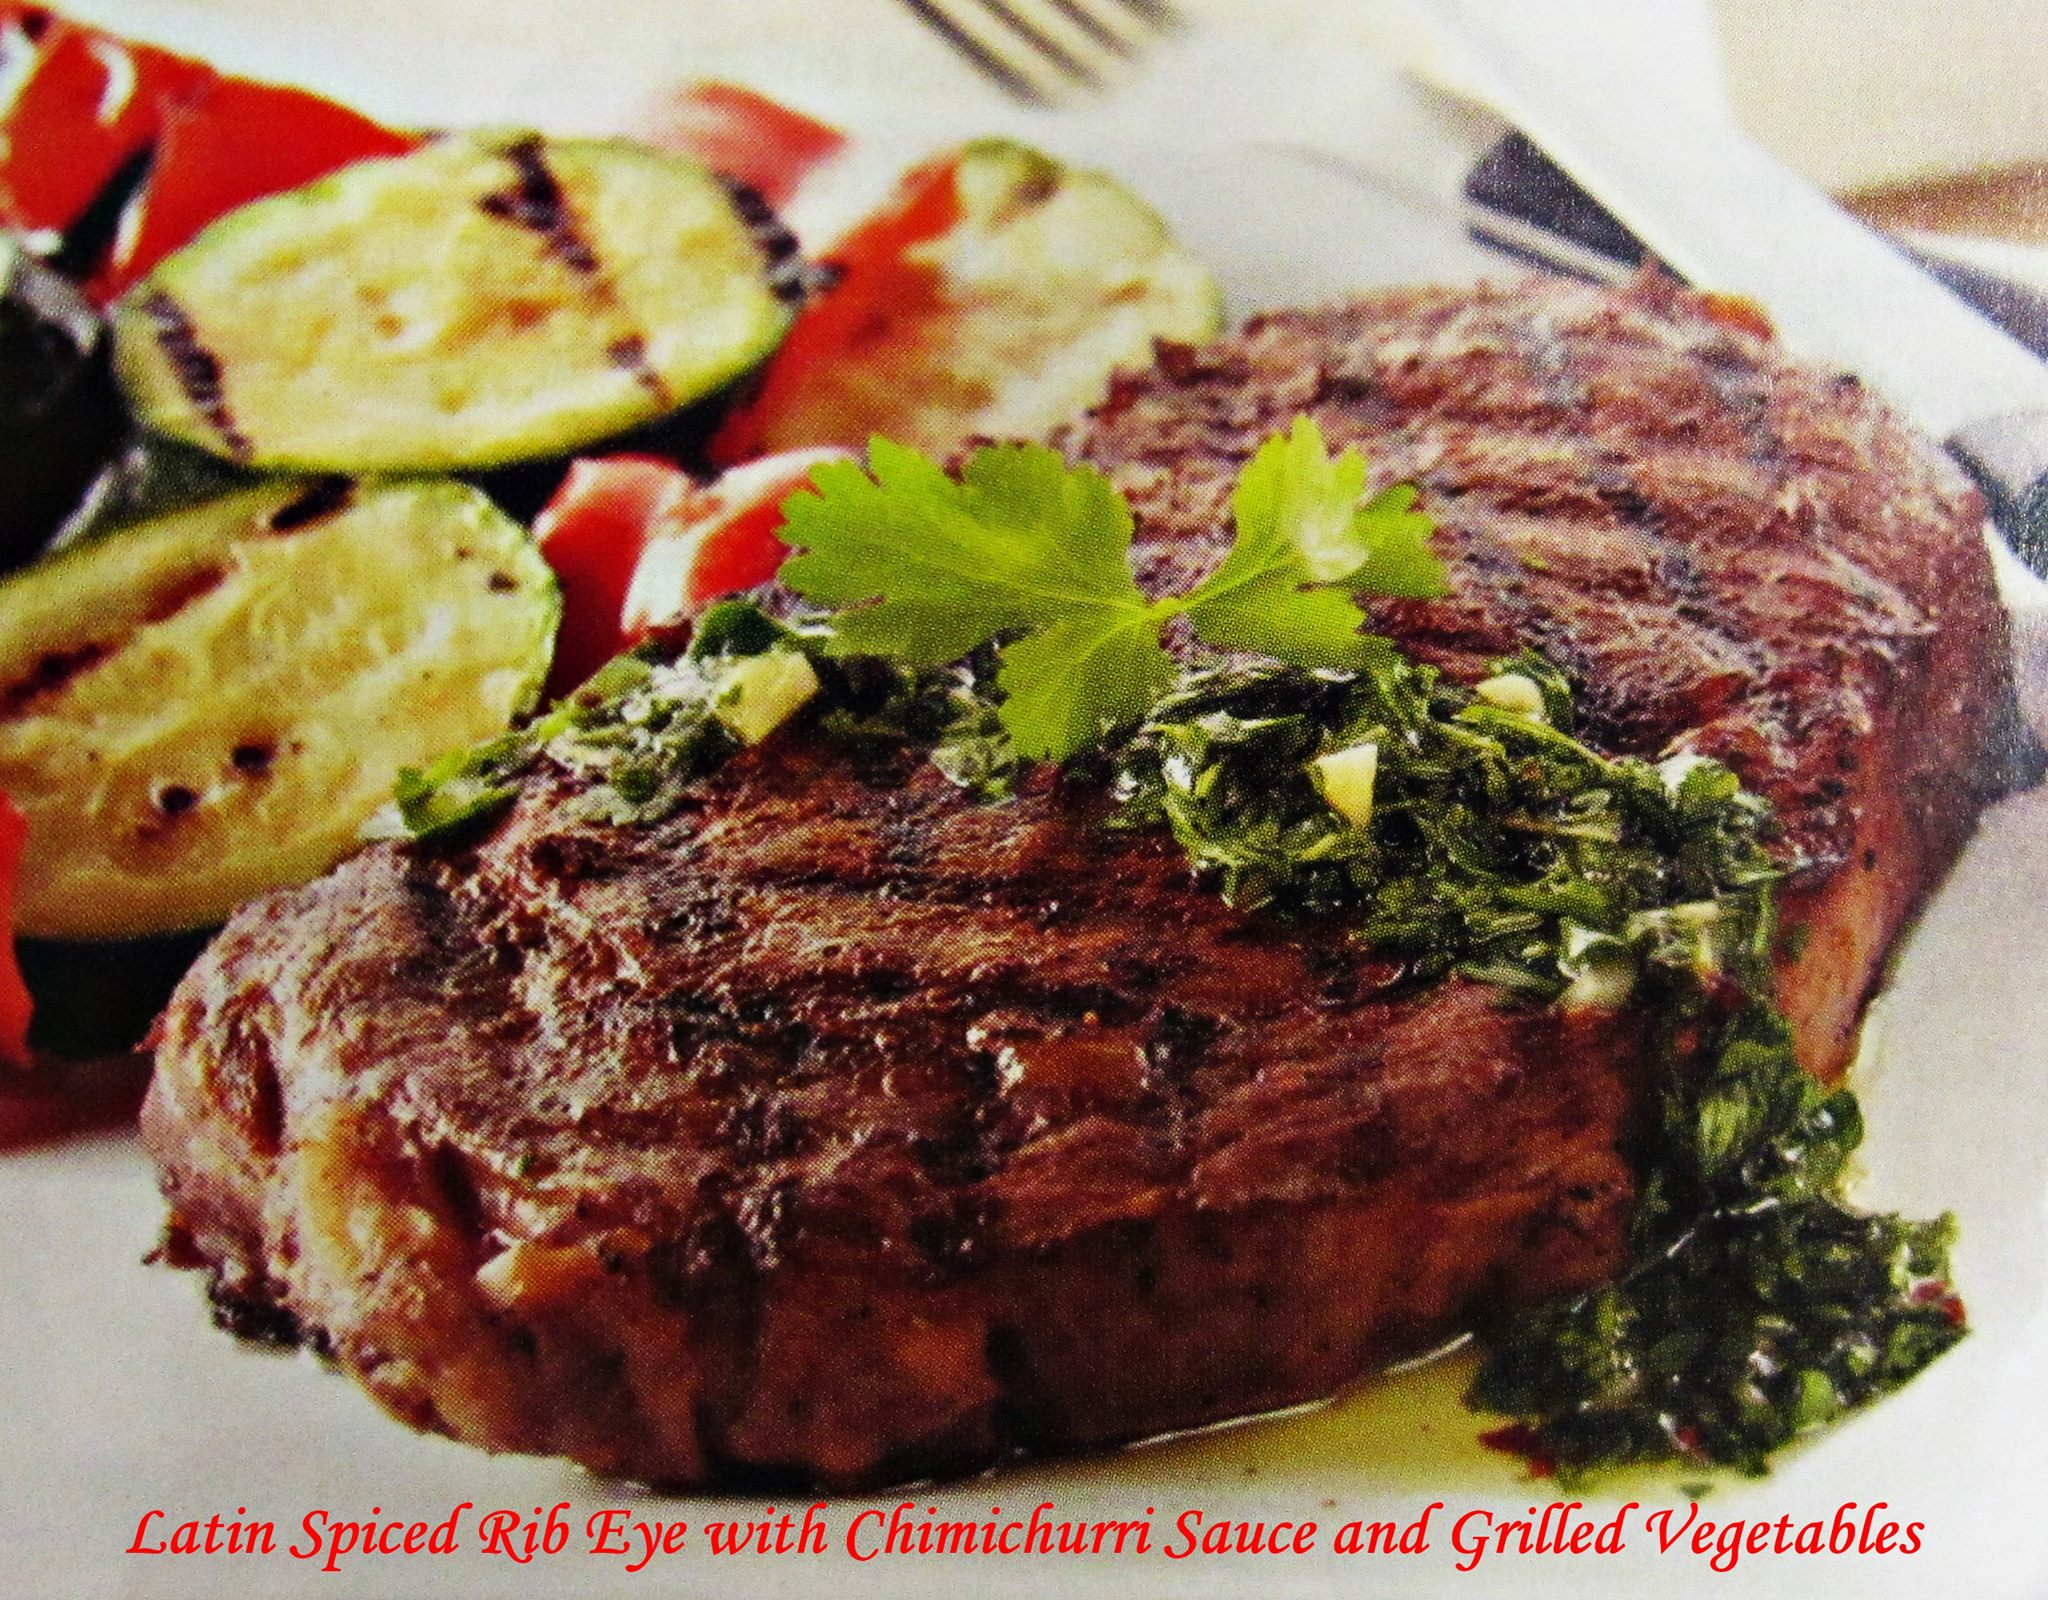 Latin Spiced Rib Eye Steak